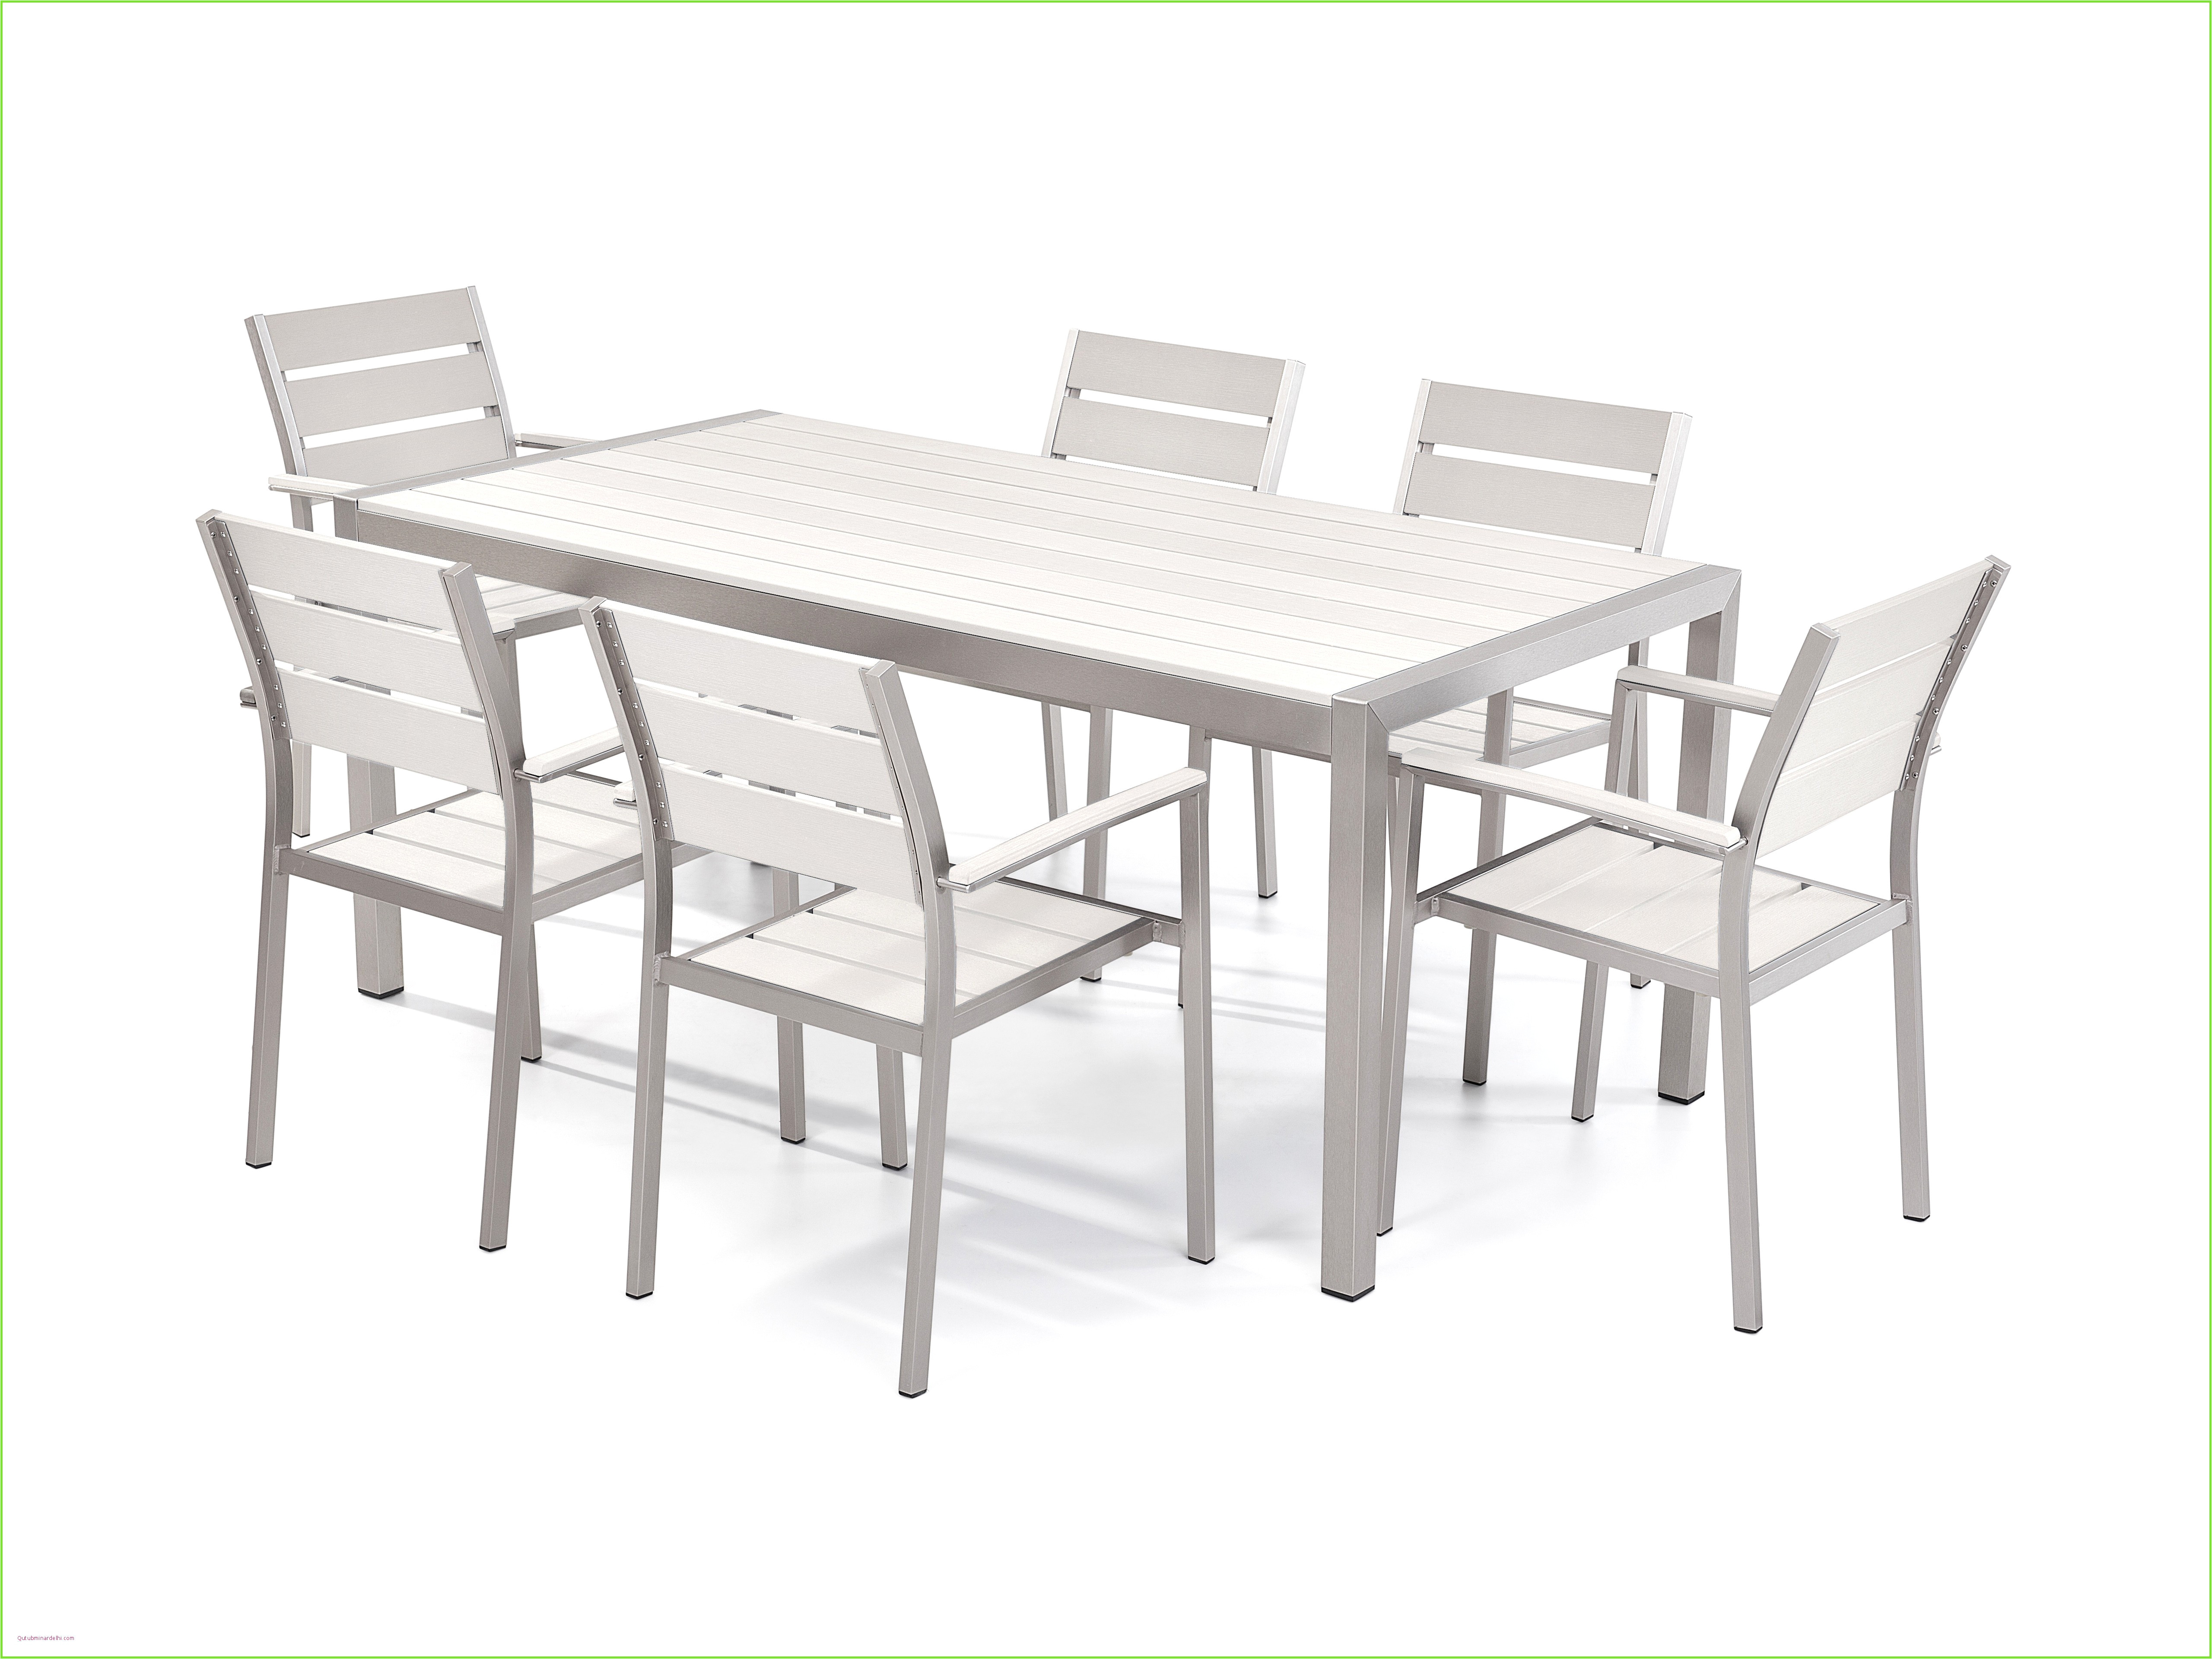 alfresco dining table fresh wood outdoor dining table luxury sehr gehend od inspiration of alfresco dining